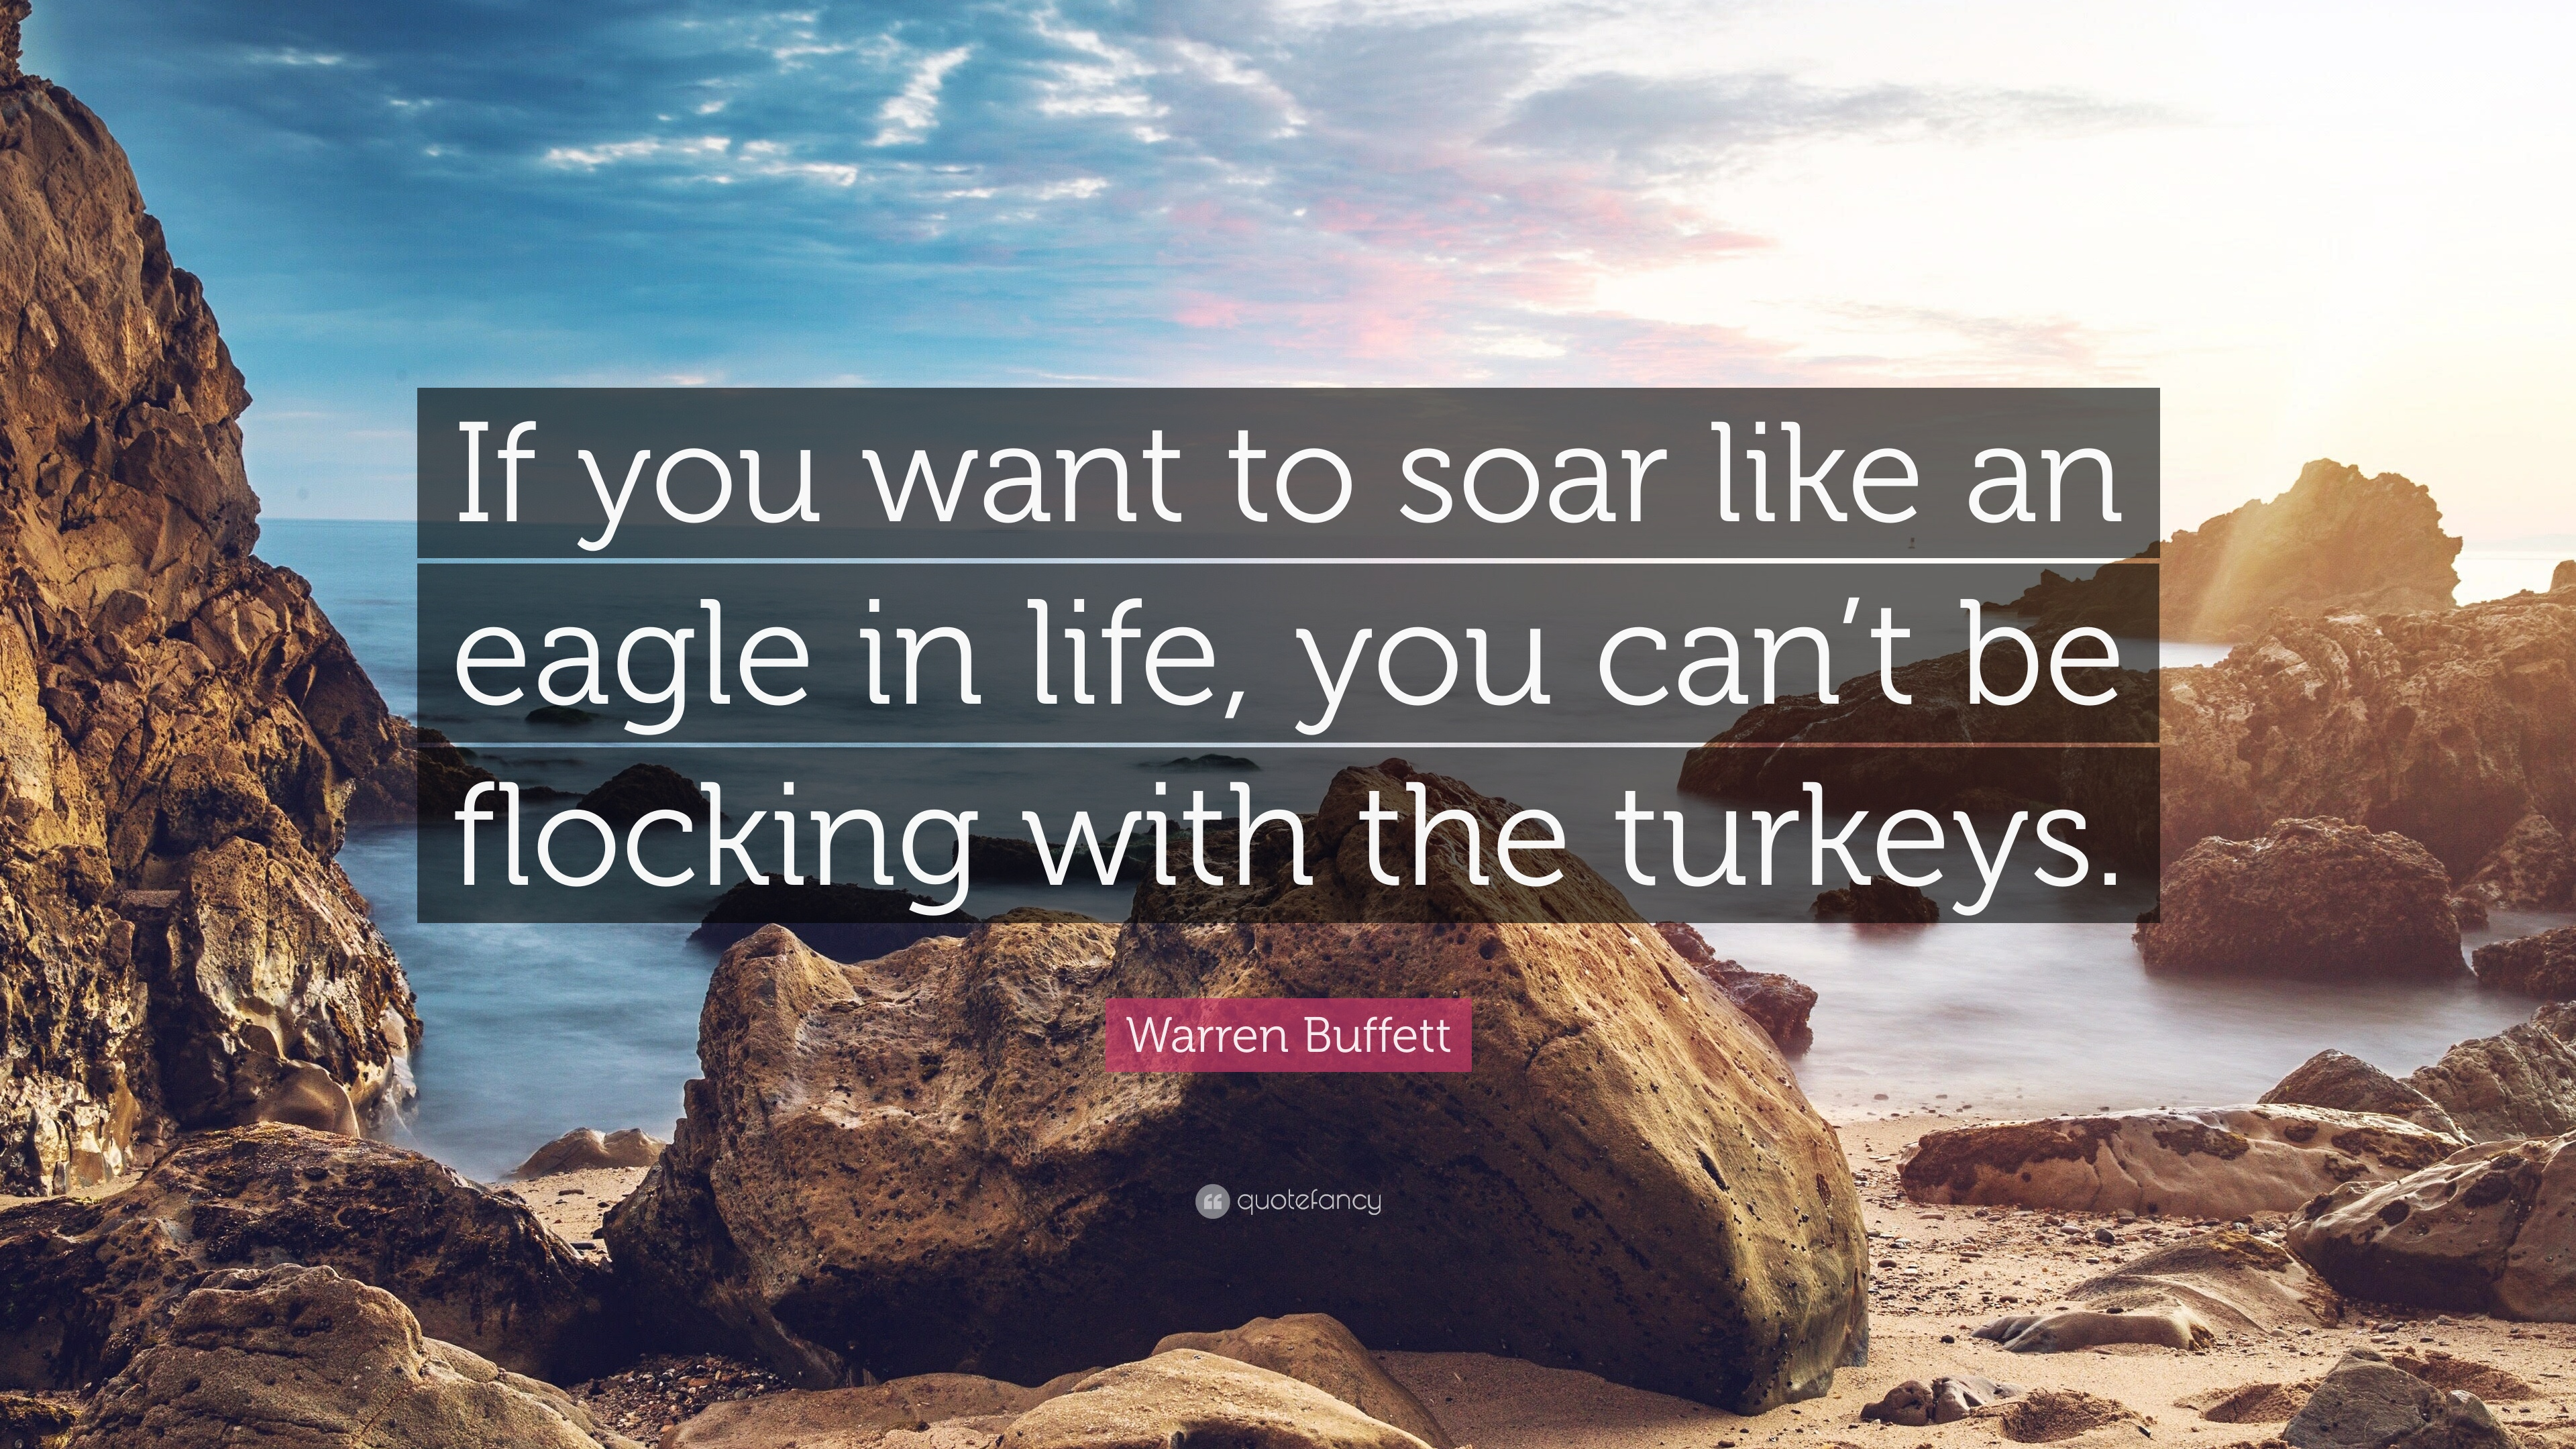 Warren Buffett Quote If You Want To Soar Like An Eagle In Life